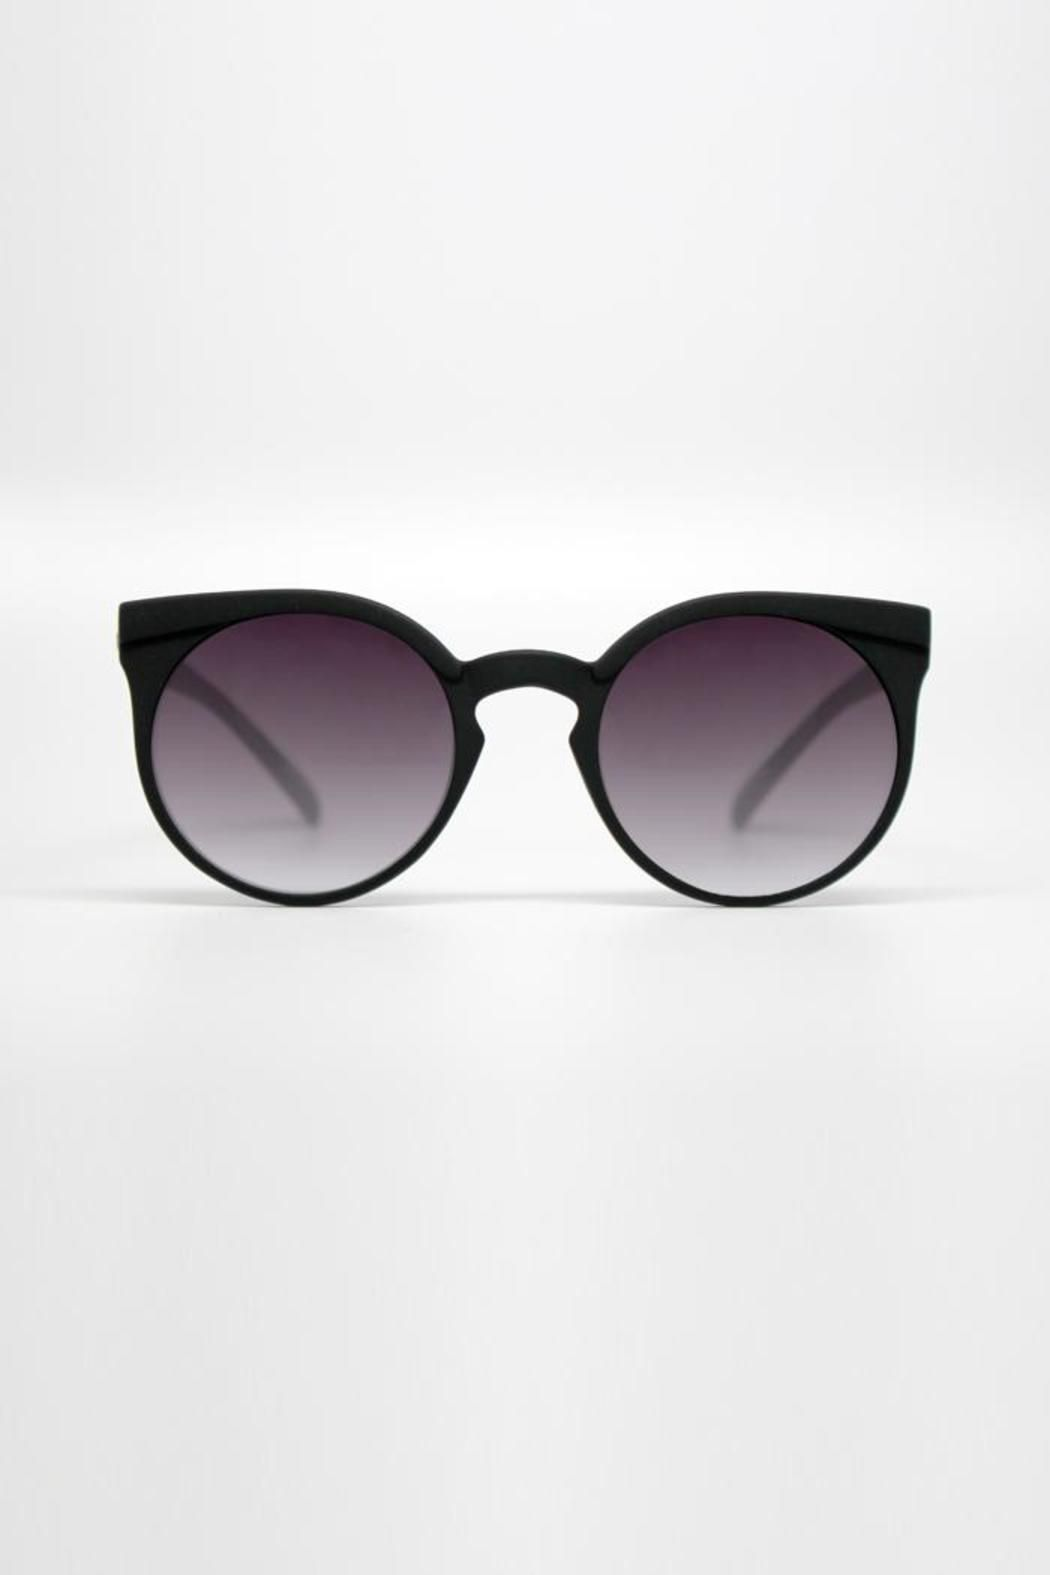 9fb087719062b These glasses are made of a polycarbonate frame and lens with stainless  steel hinges and UV protection. Quay Kosha Sunglasses by Quay Australia.